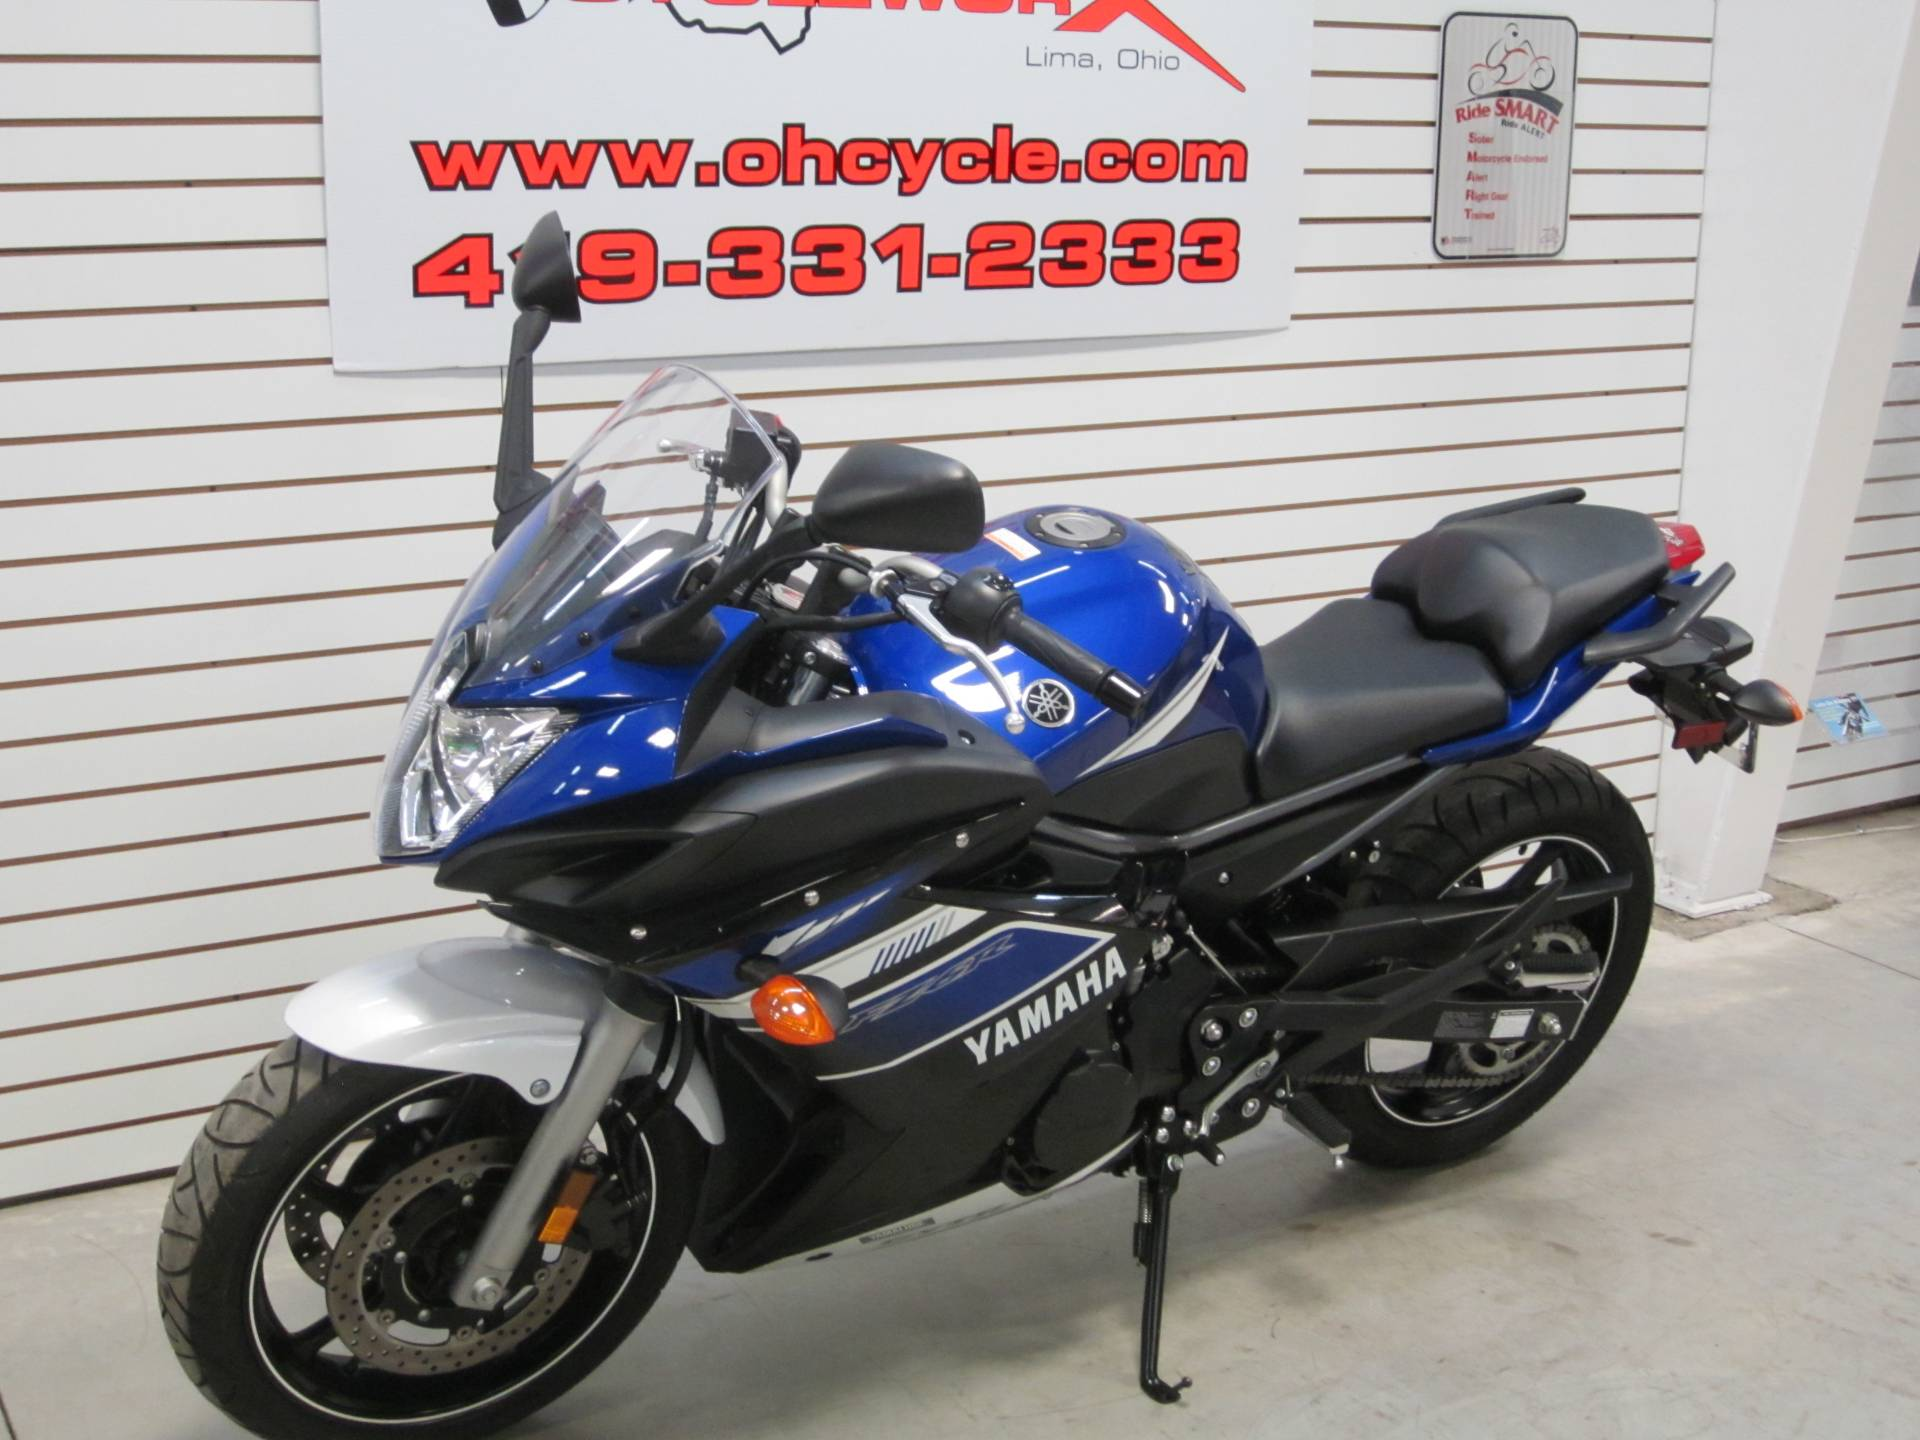 2013 Yamaha FZ6R in Lima, Ohio